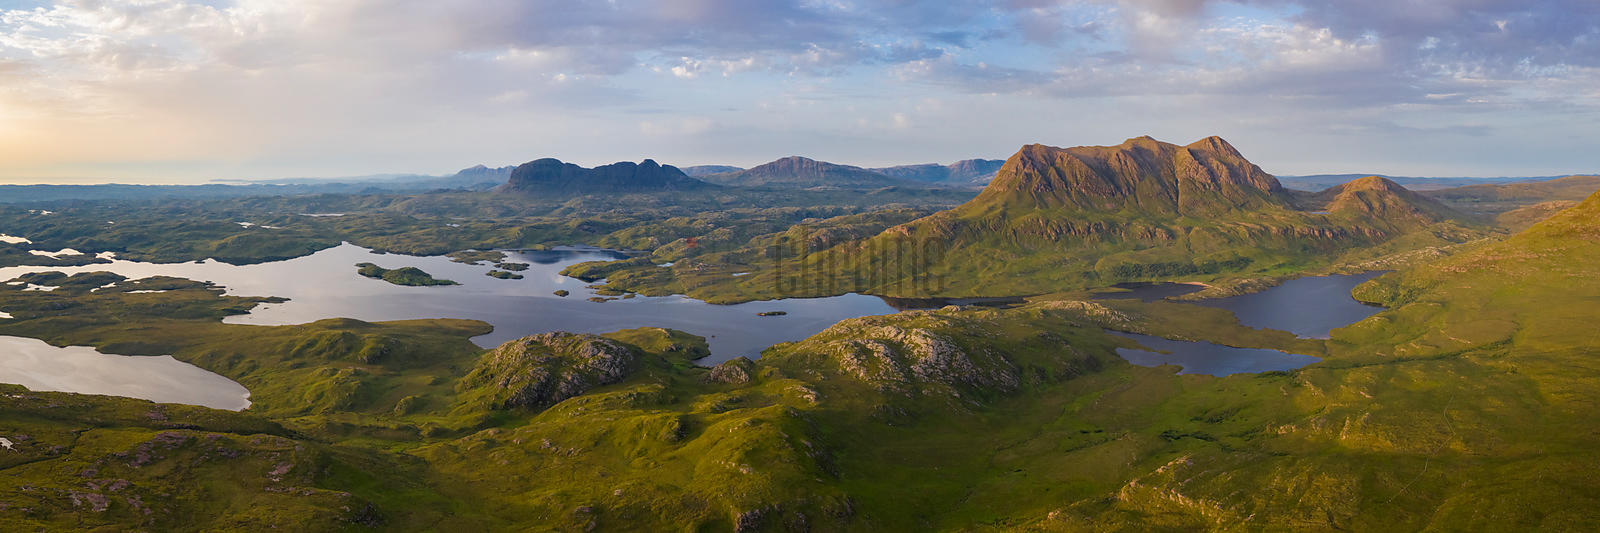 View from Stac Pollaidh looking north towards Suilven (the darker peak to the left—the larger peak on the right is Cul Mor)